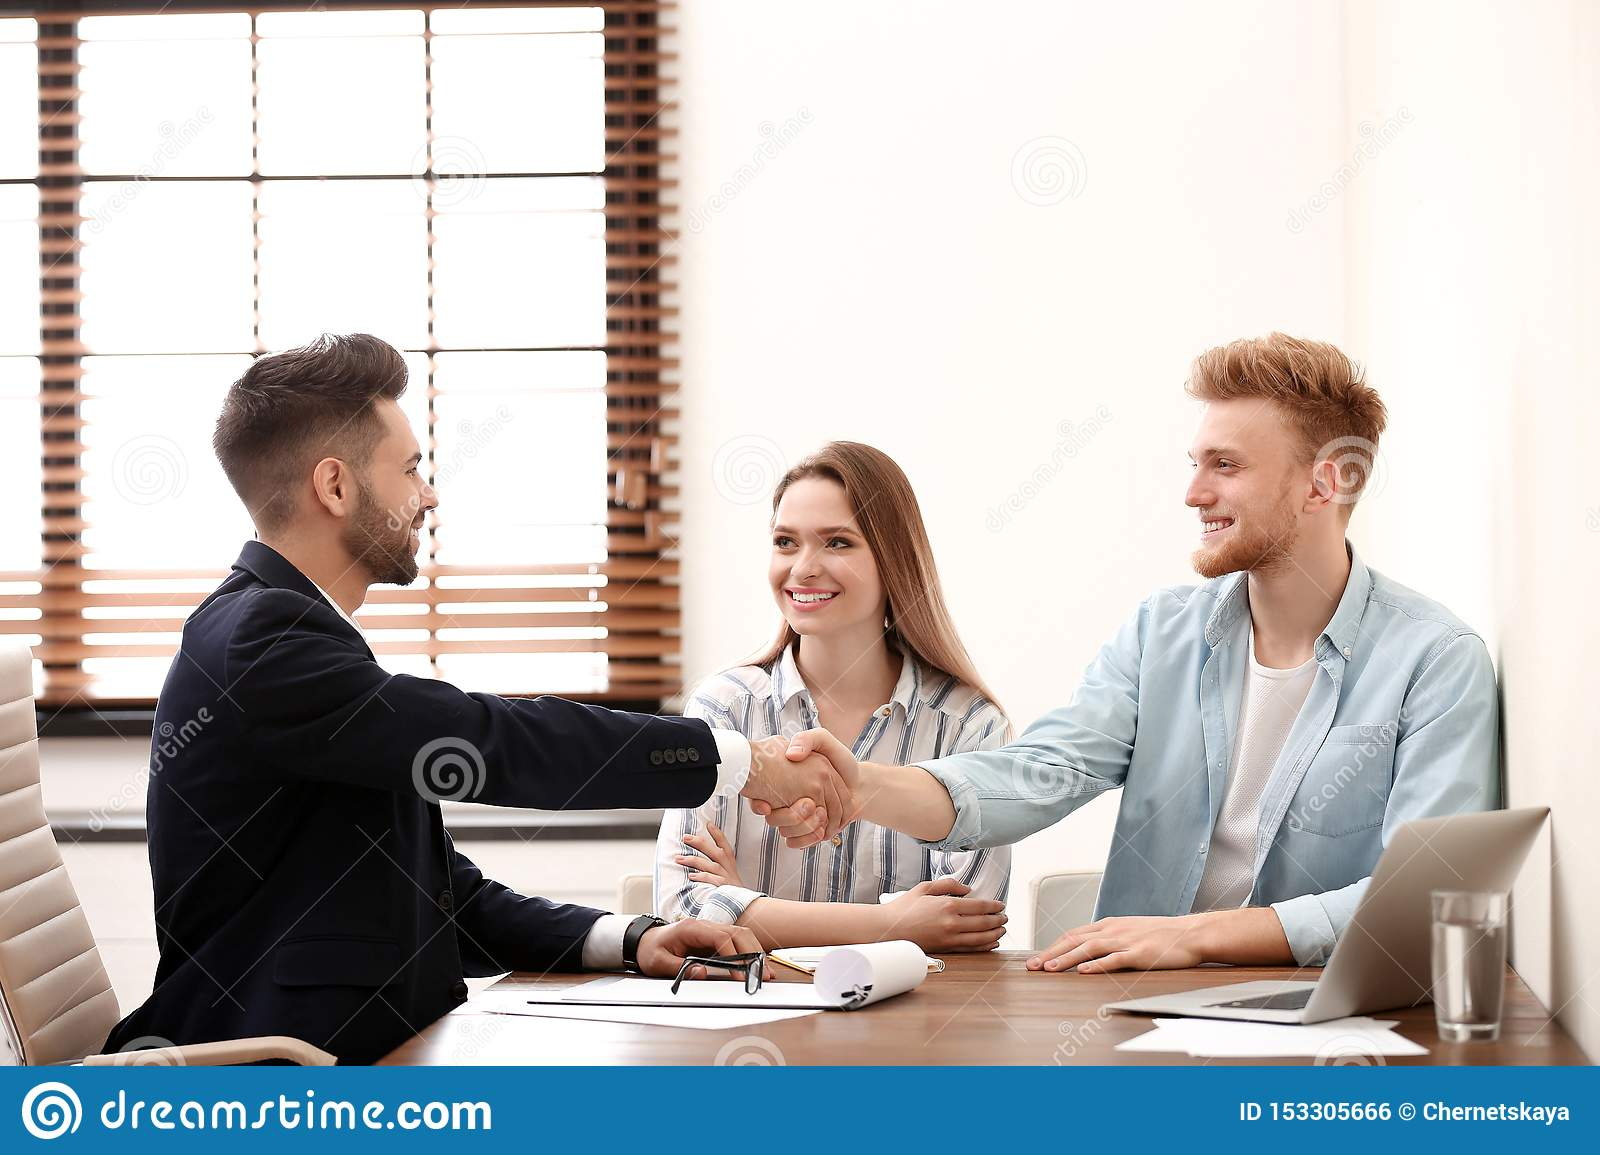 Insurance Agent Shaking Hands With Client Stock Photo Image Of Health Agent 153305666